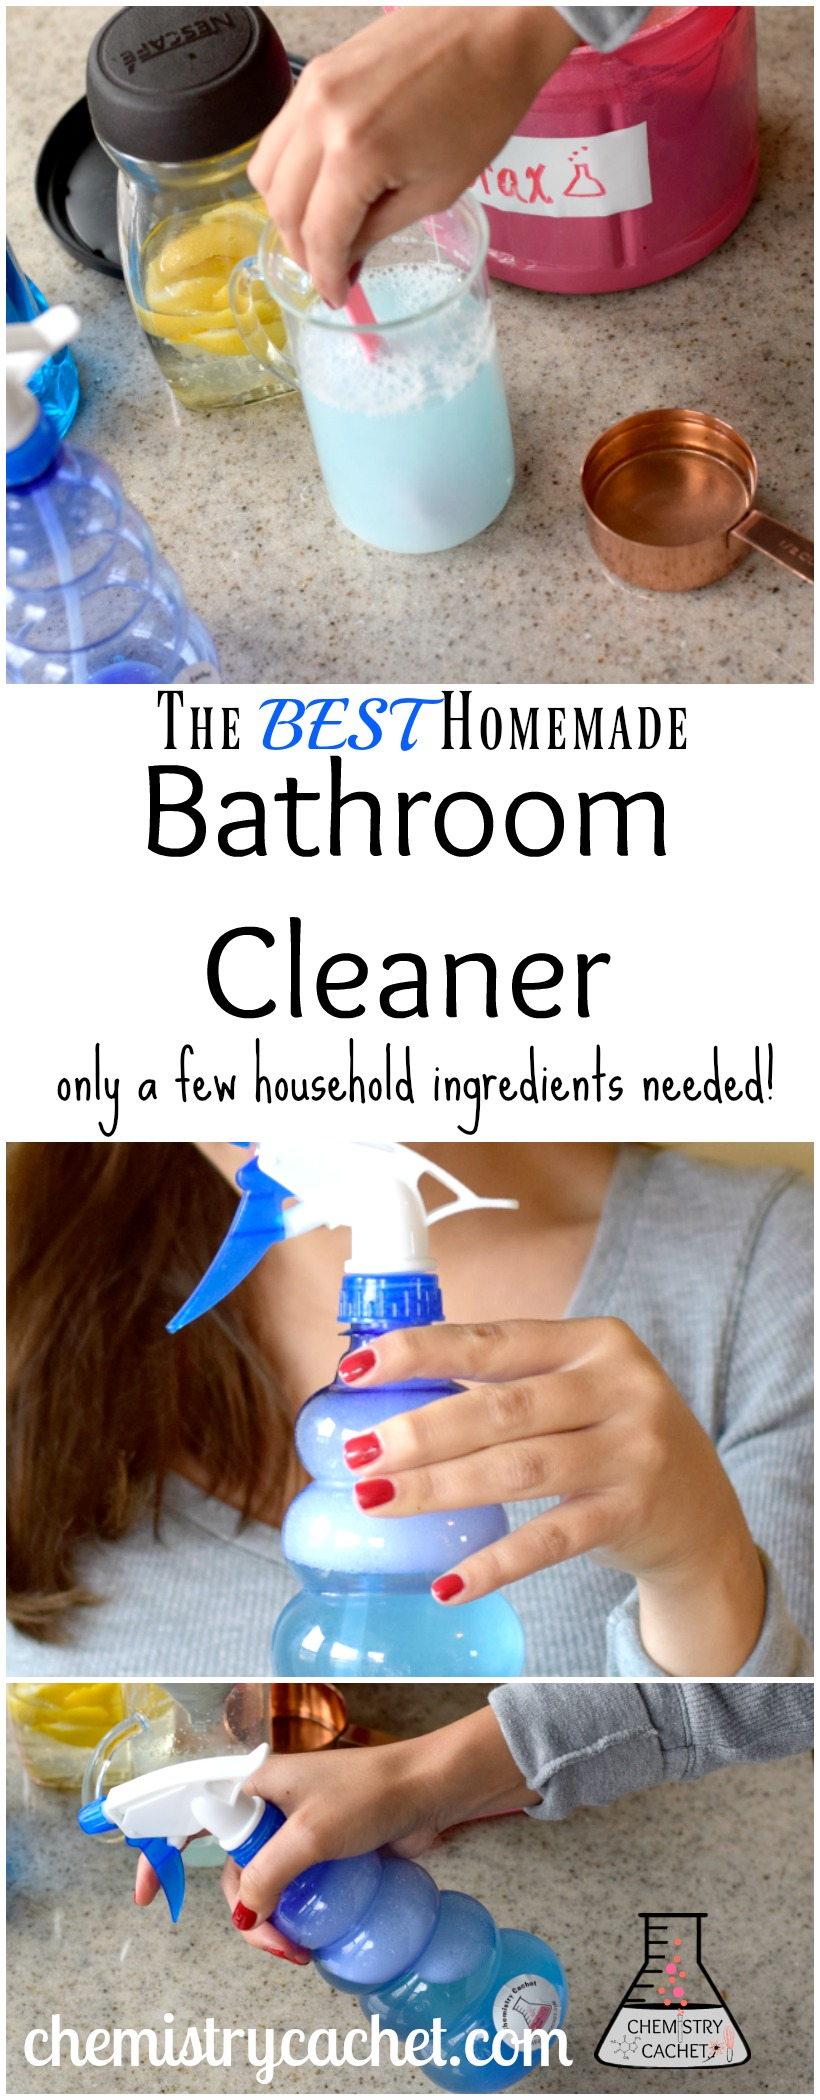 pin the tutorial for the best homemade bathroom cleaner - Homemade Bathroom Cleaner